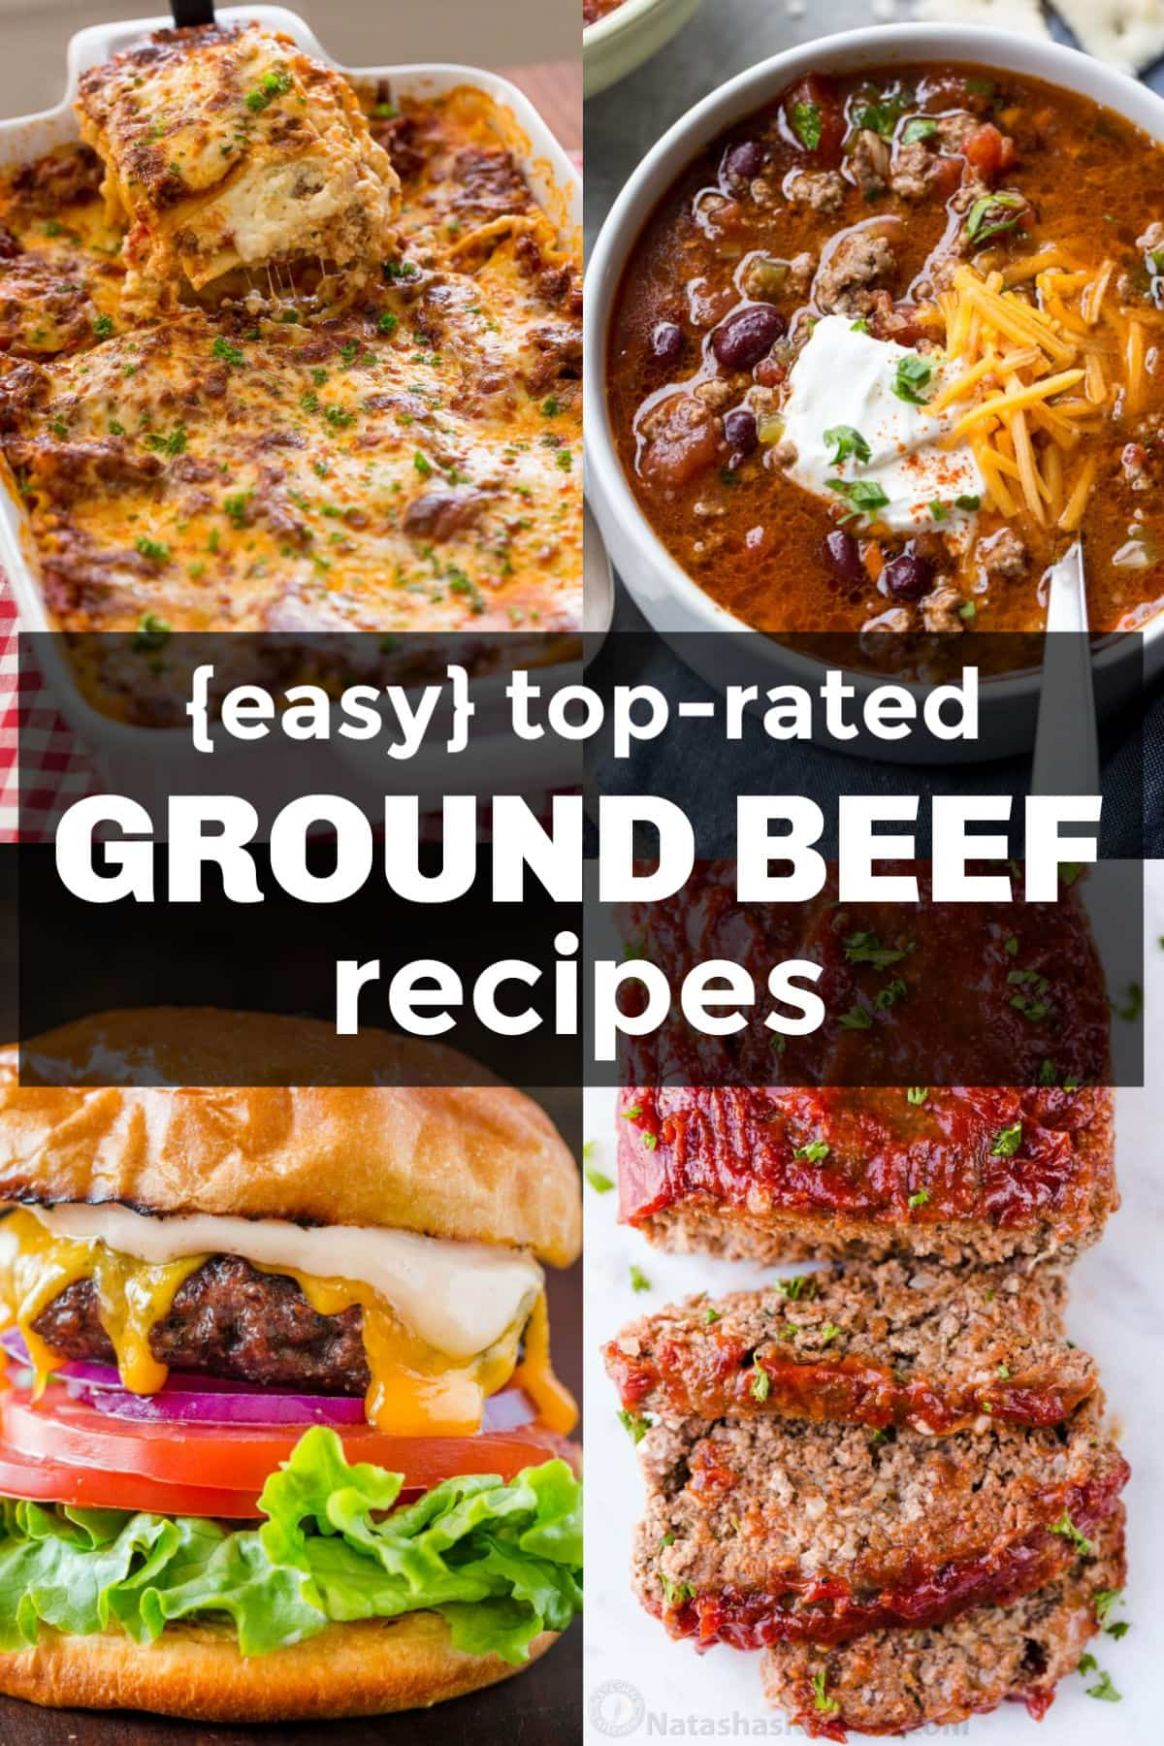 How to Cook Ground Beef for Ground Beef Recipes